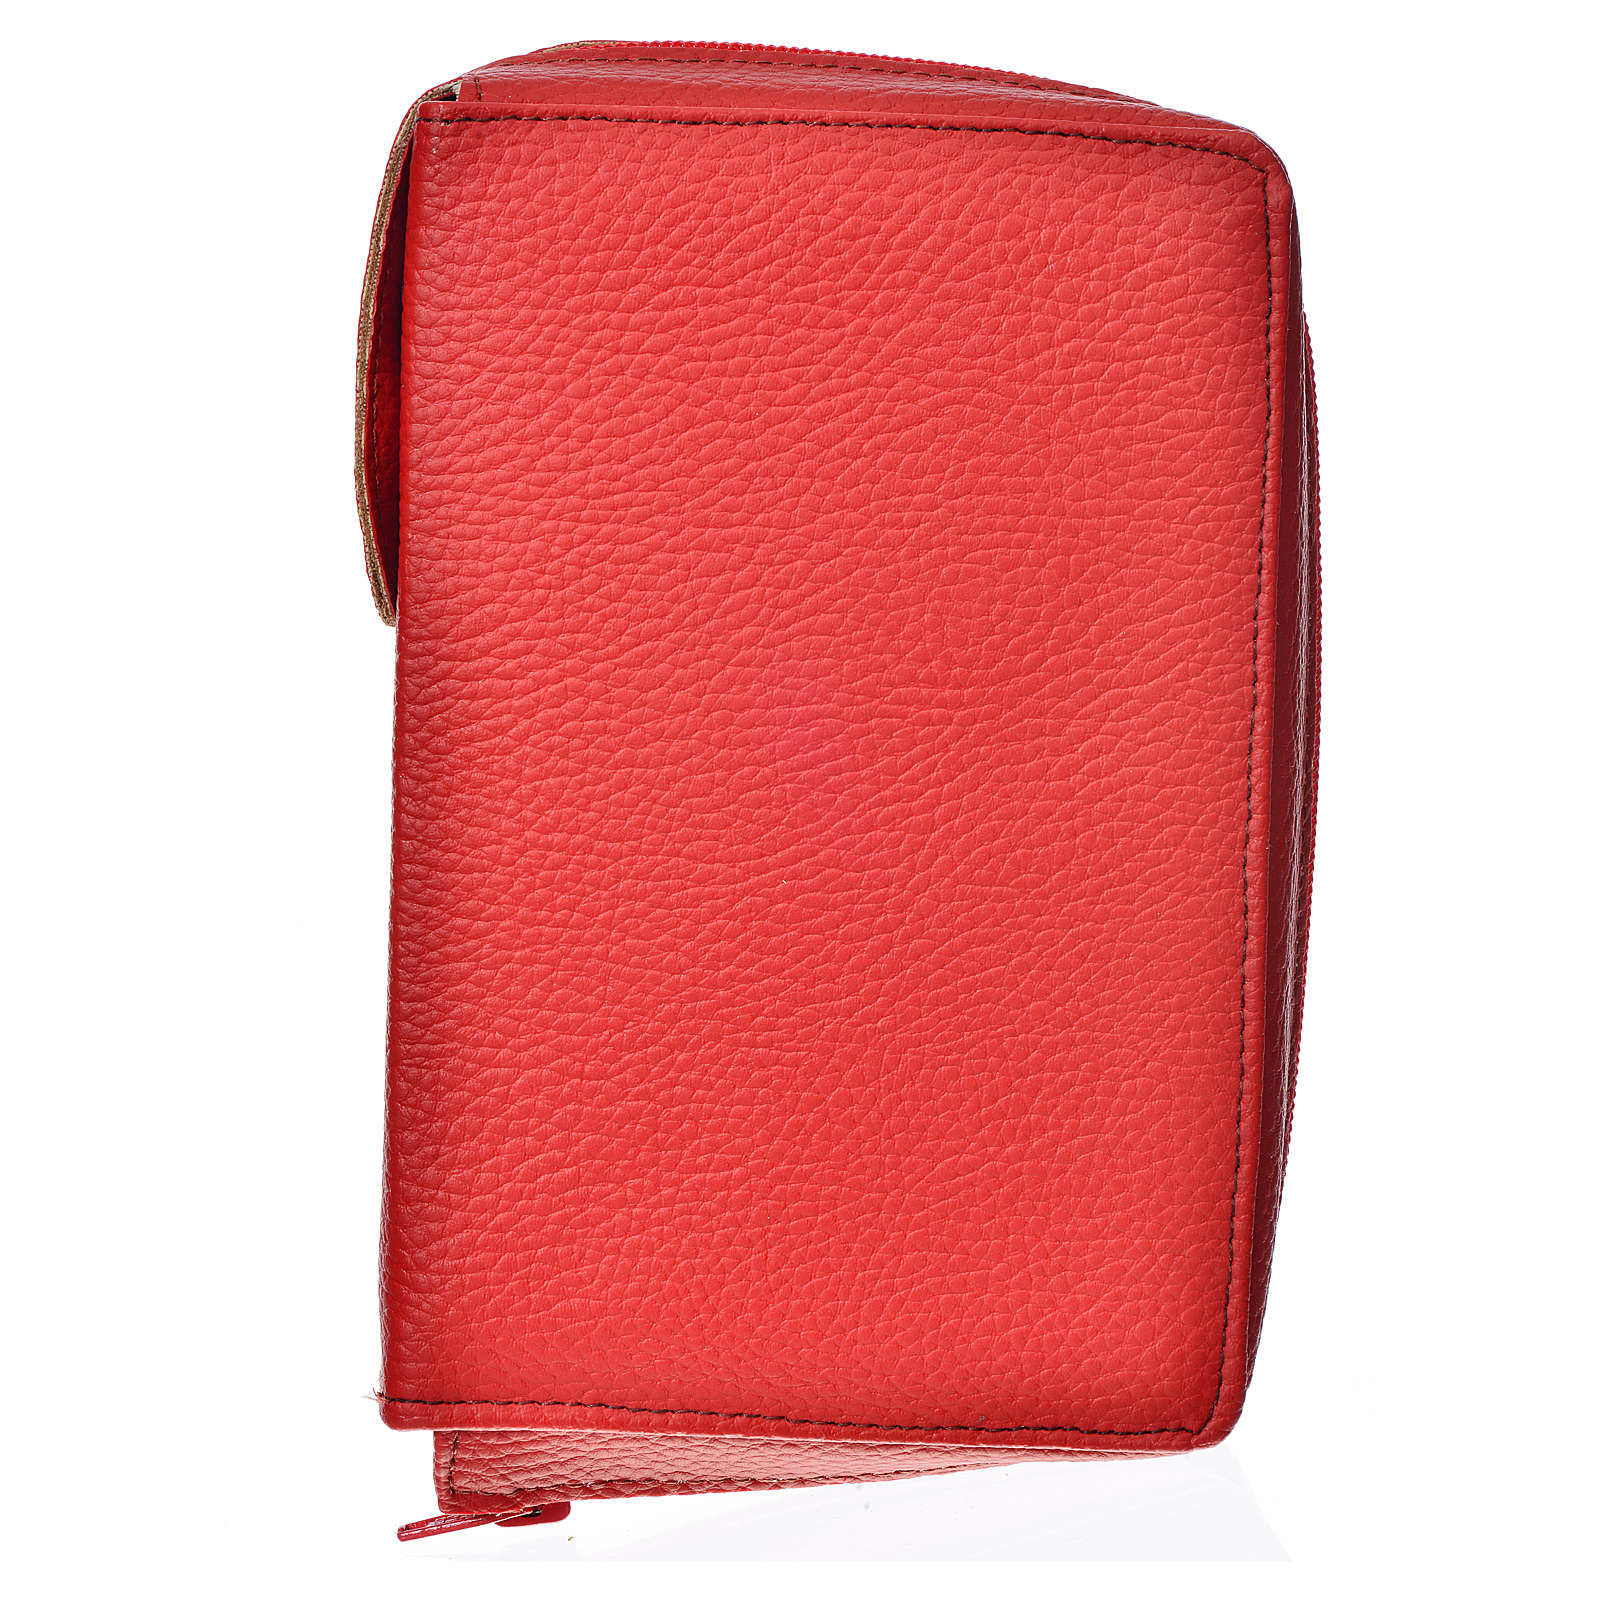 Cover for the New Jerusalem Bible READER ED., red bonded leather 4